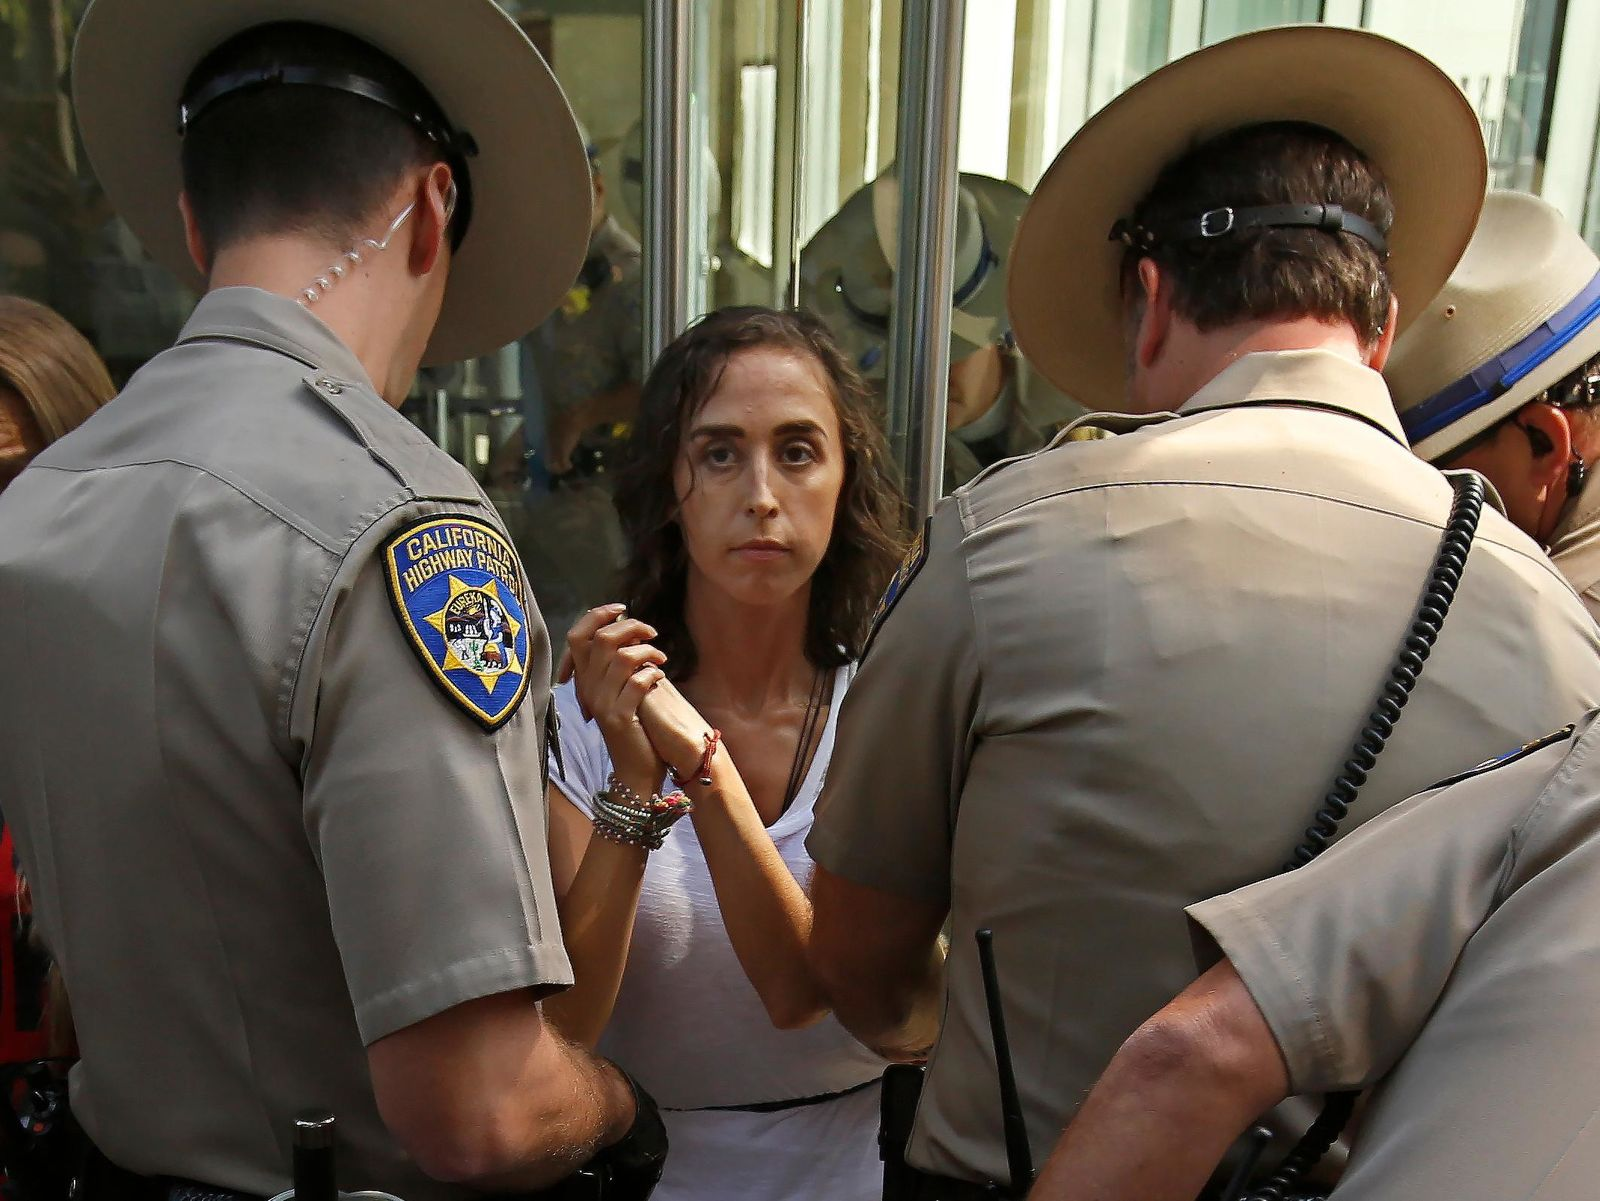 California Highway Patrol officers take into custody an opponent of recently passed legislation to tighten the rules on giving exemptions for vaccinations, after she cabled herself to the doors of the state Capitol in Sacramento, Calif., Monday, Sept. 9, 2019. The state Assembly approved the companion bill, Monday, with changes demanded by Gov Gavin Newsom as a condition of signing the controversial vaccine bill SB276 which was passed by the Legislature last week.(AP Photo/Rich Pedroncelli)